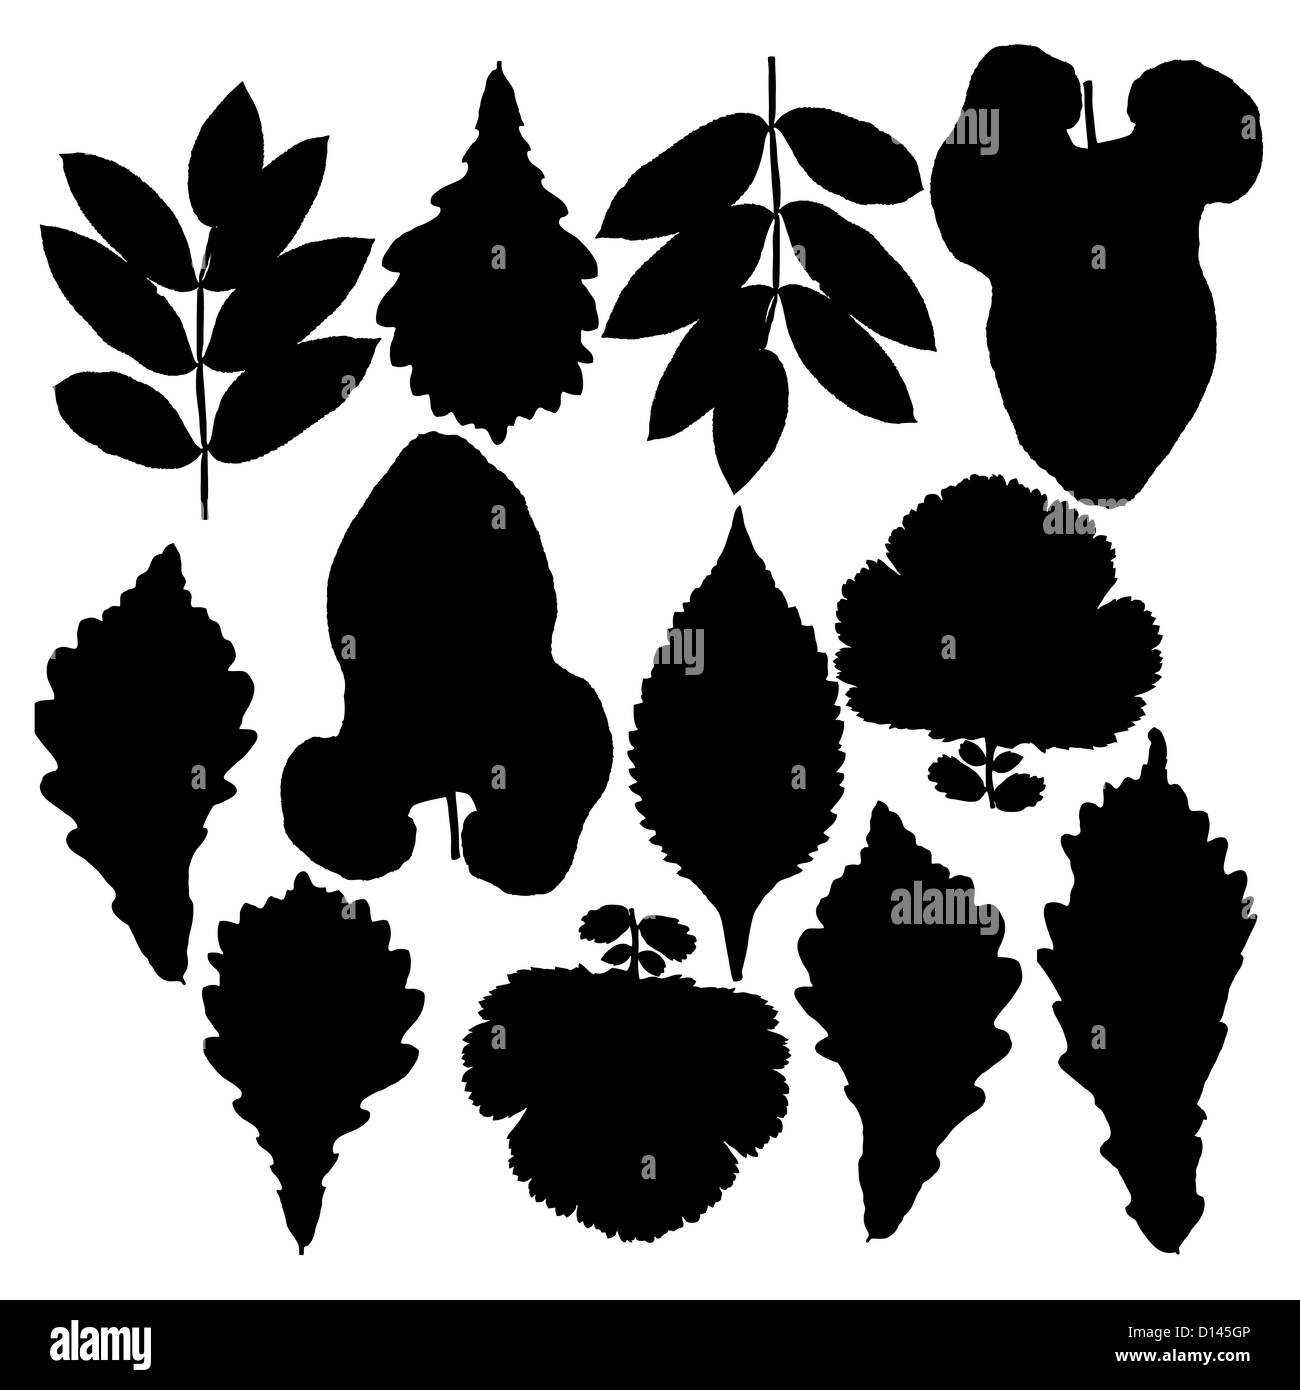 Set of silhouettes of leaves. Oak, mountain ash, birch, aspen, poplar and hawthorn. Isolated on white. Vector illustrations. - Stock Image